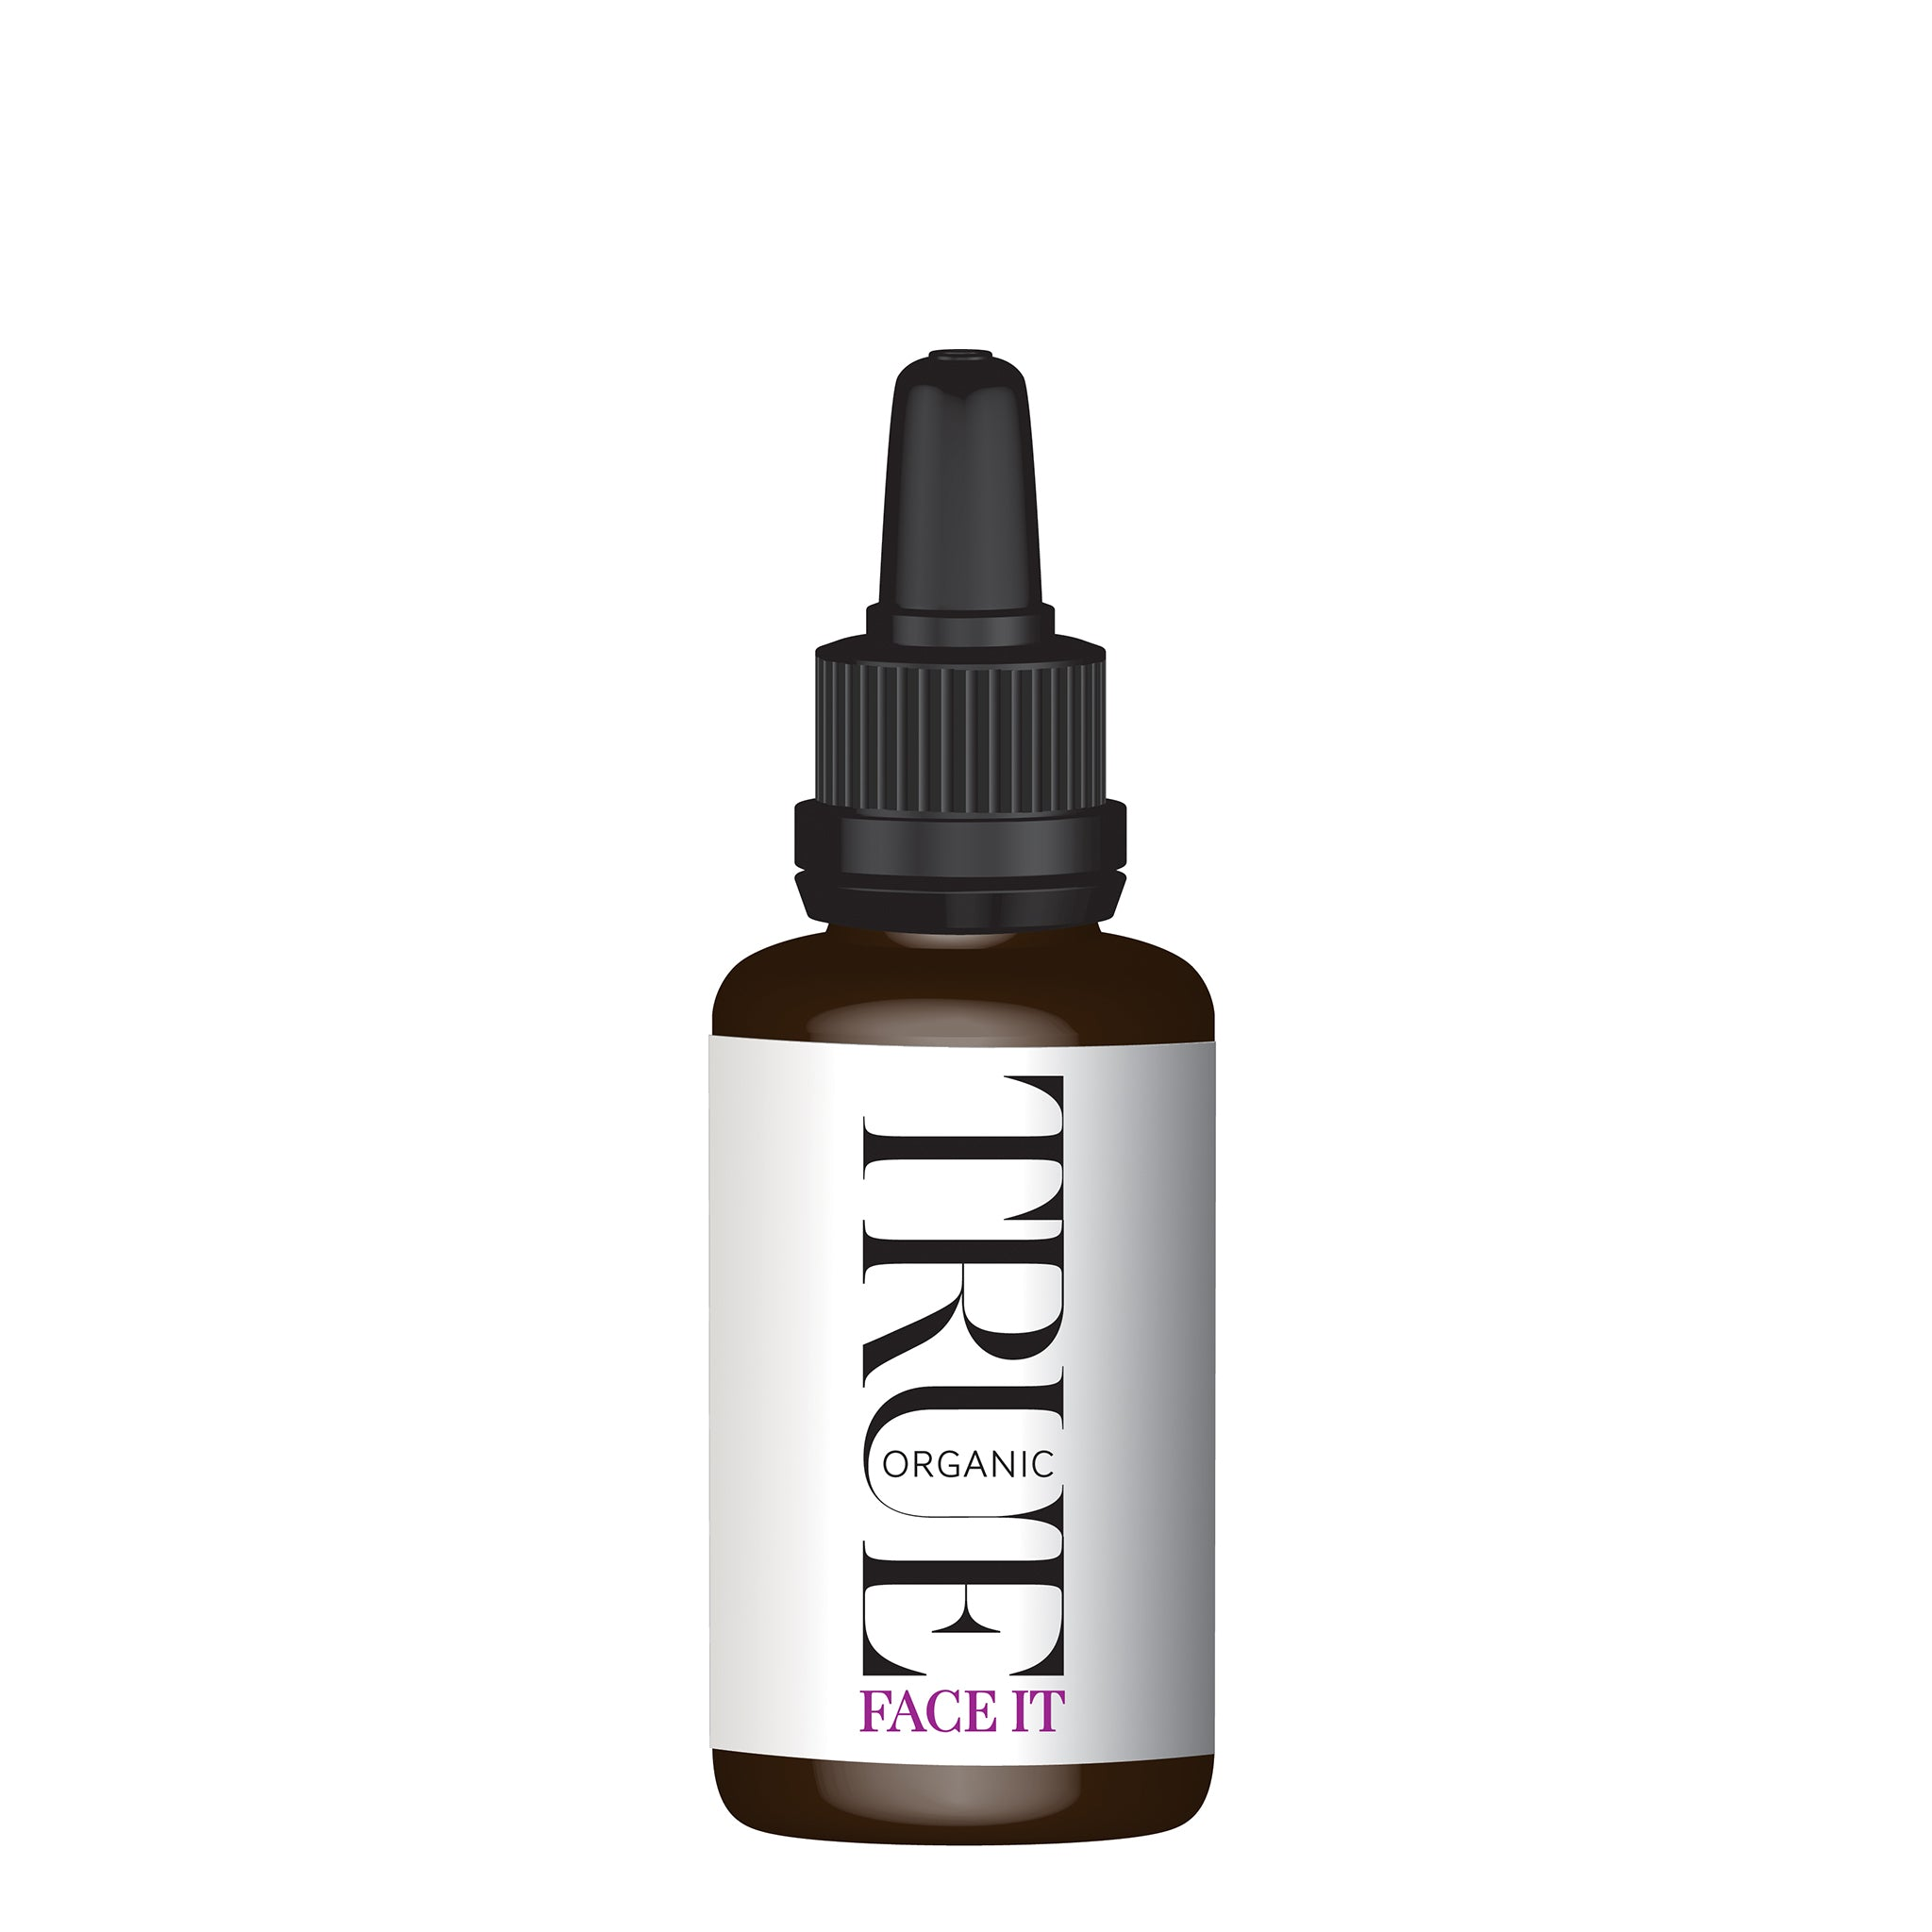 True Organic of Sweden Face It Serum